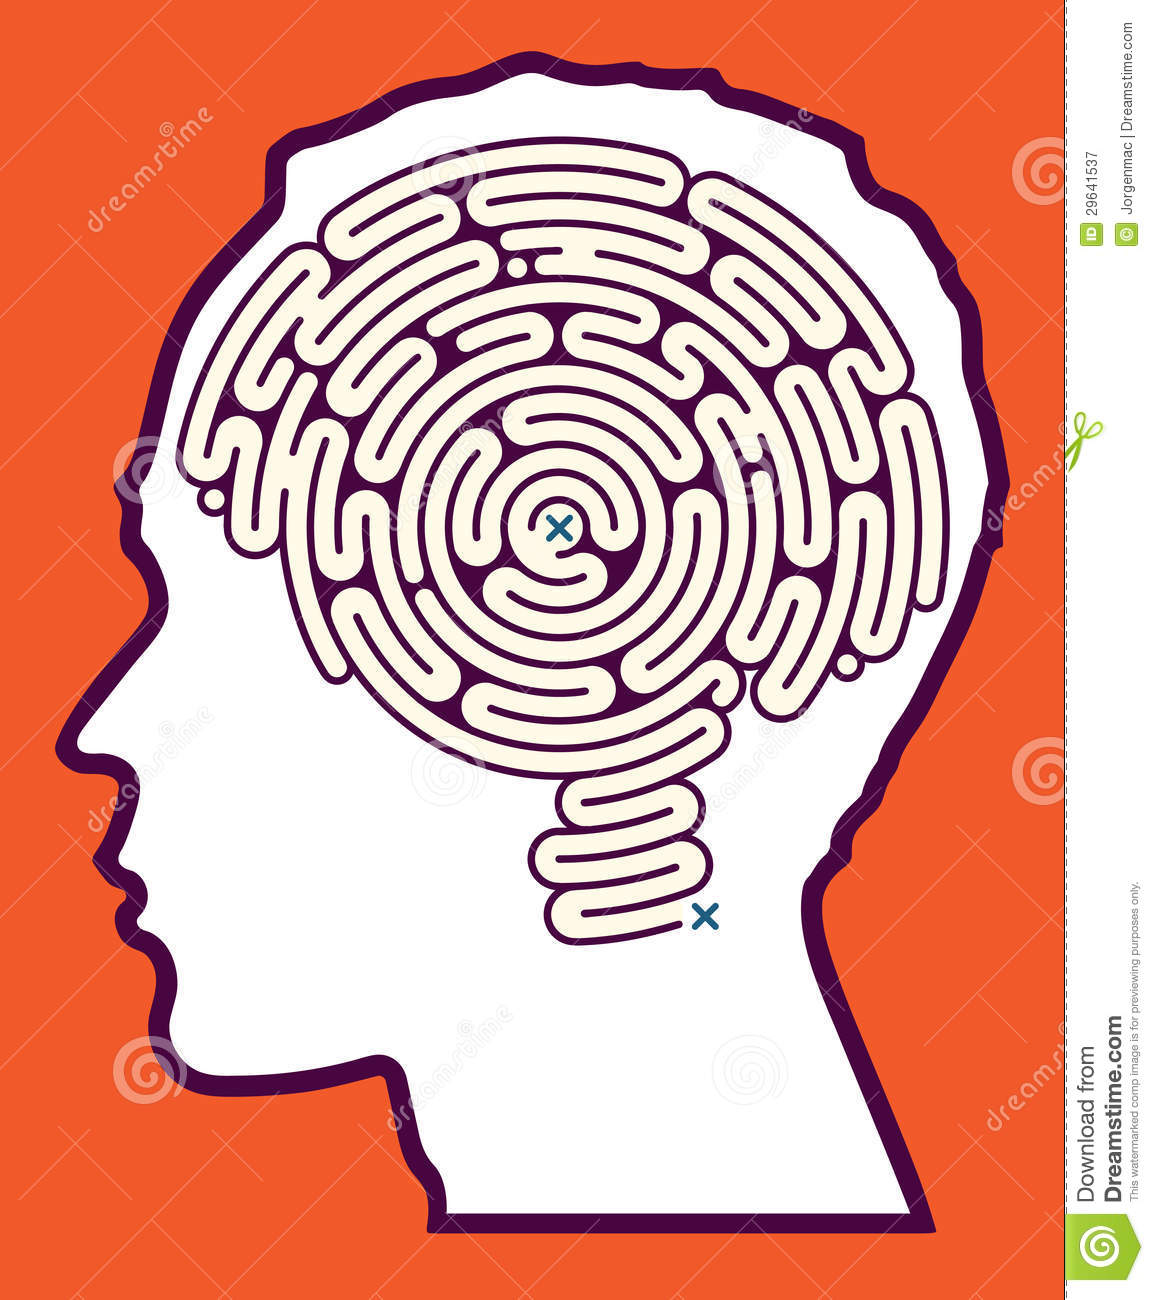 ... of an intriguing mind puzzle in the form of a brain shaped maze